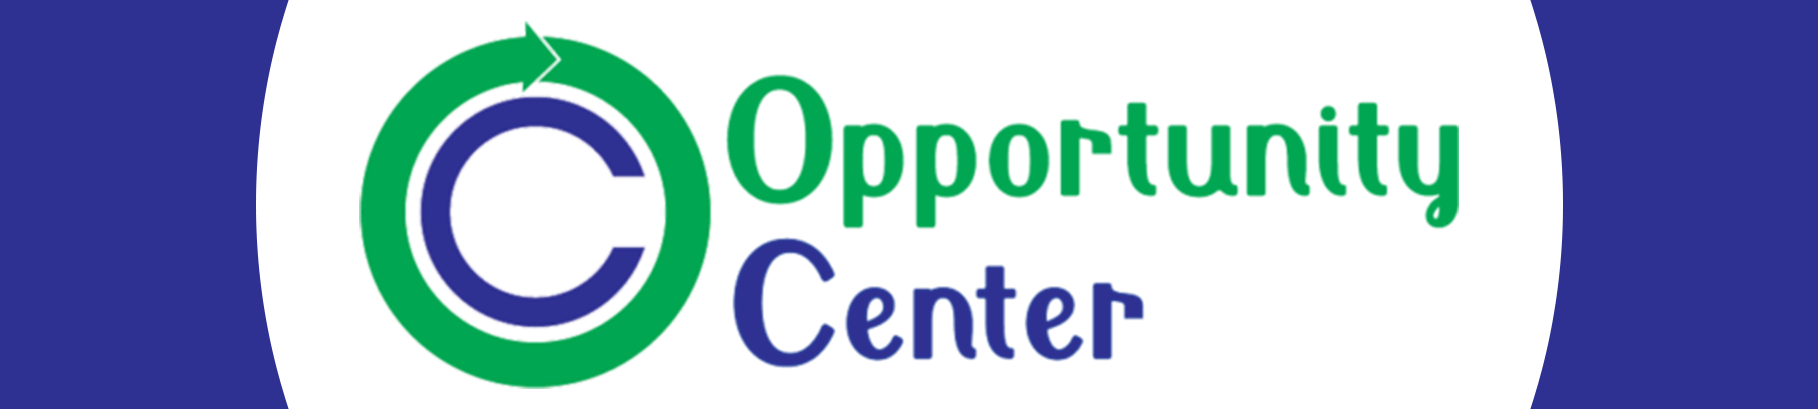 Opportunity Center Owensboro Adult Disability